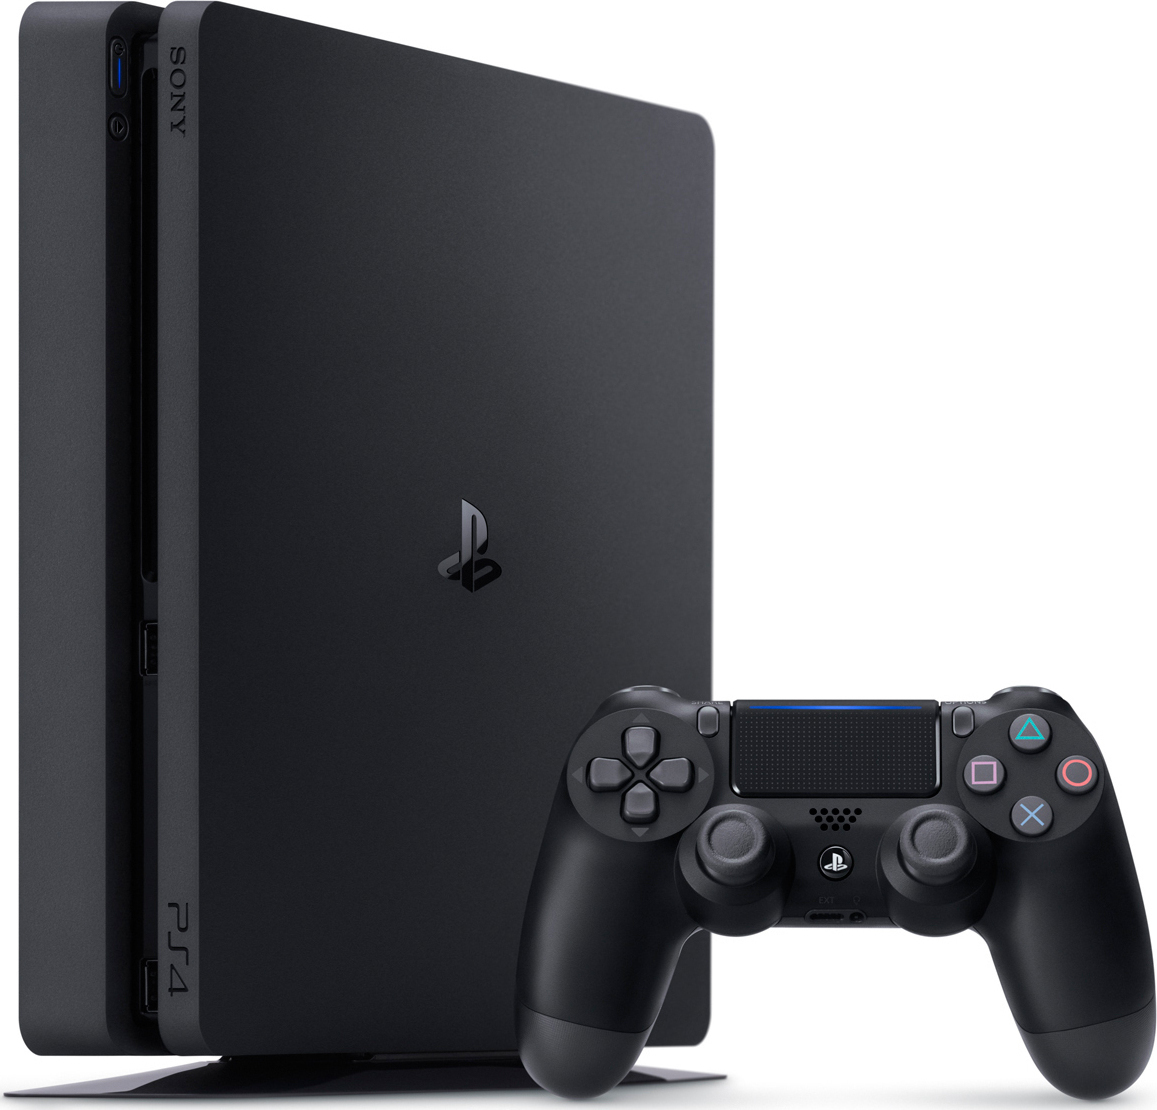 Sony Playstation 4 PS4 Slim D Chassis 500GB Black EU